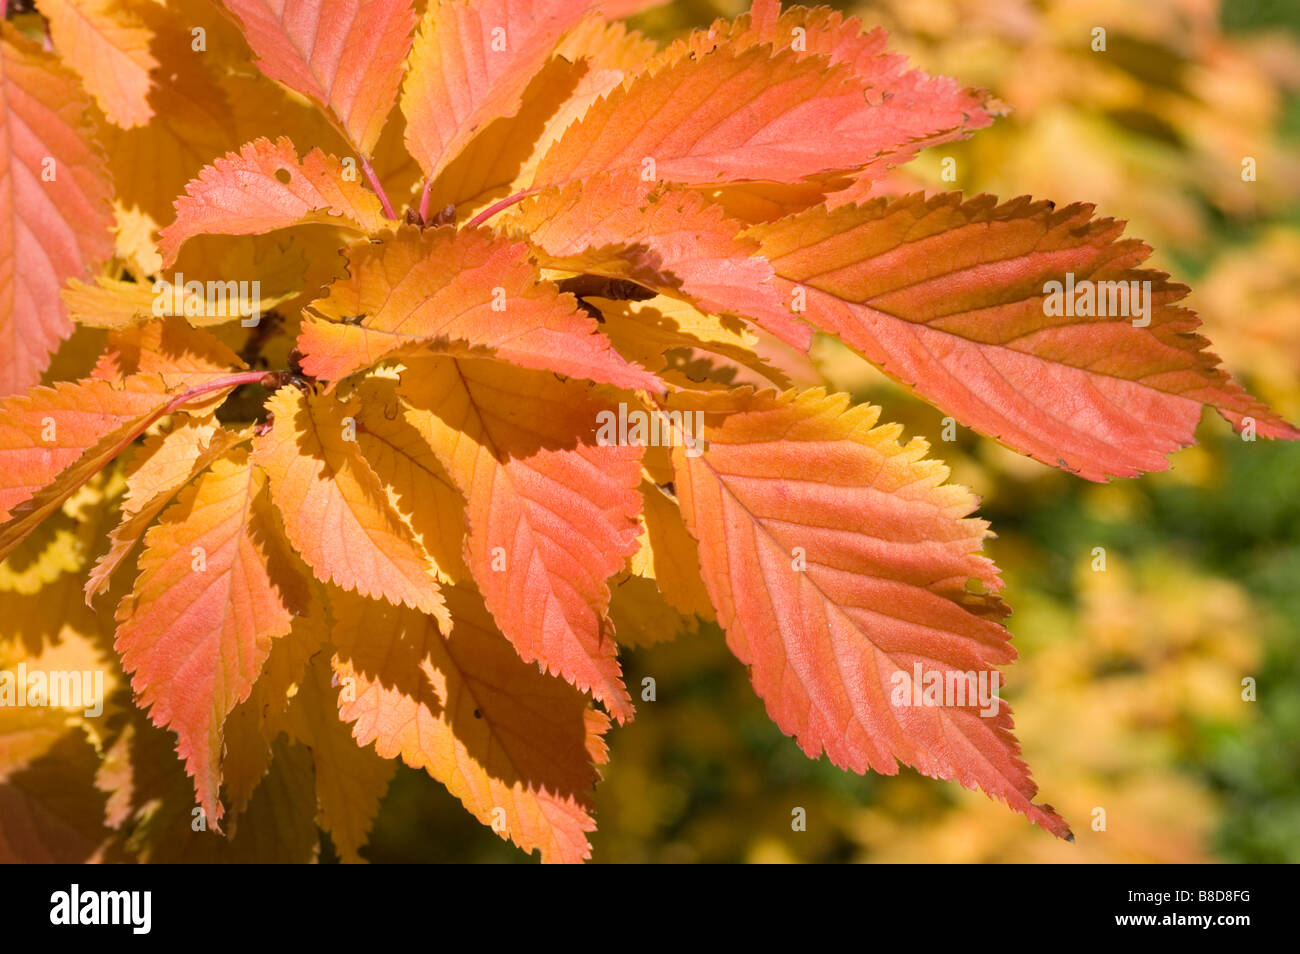 Red yellow autumn leaves of cherry tree, prunus x hillieri Kornicensis, Rosaceae family - Stock Image